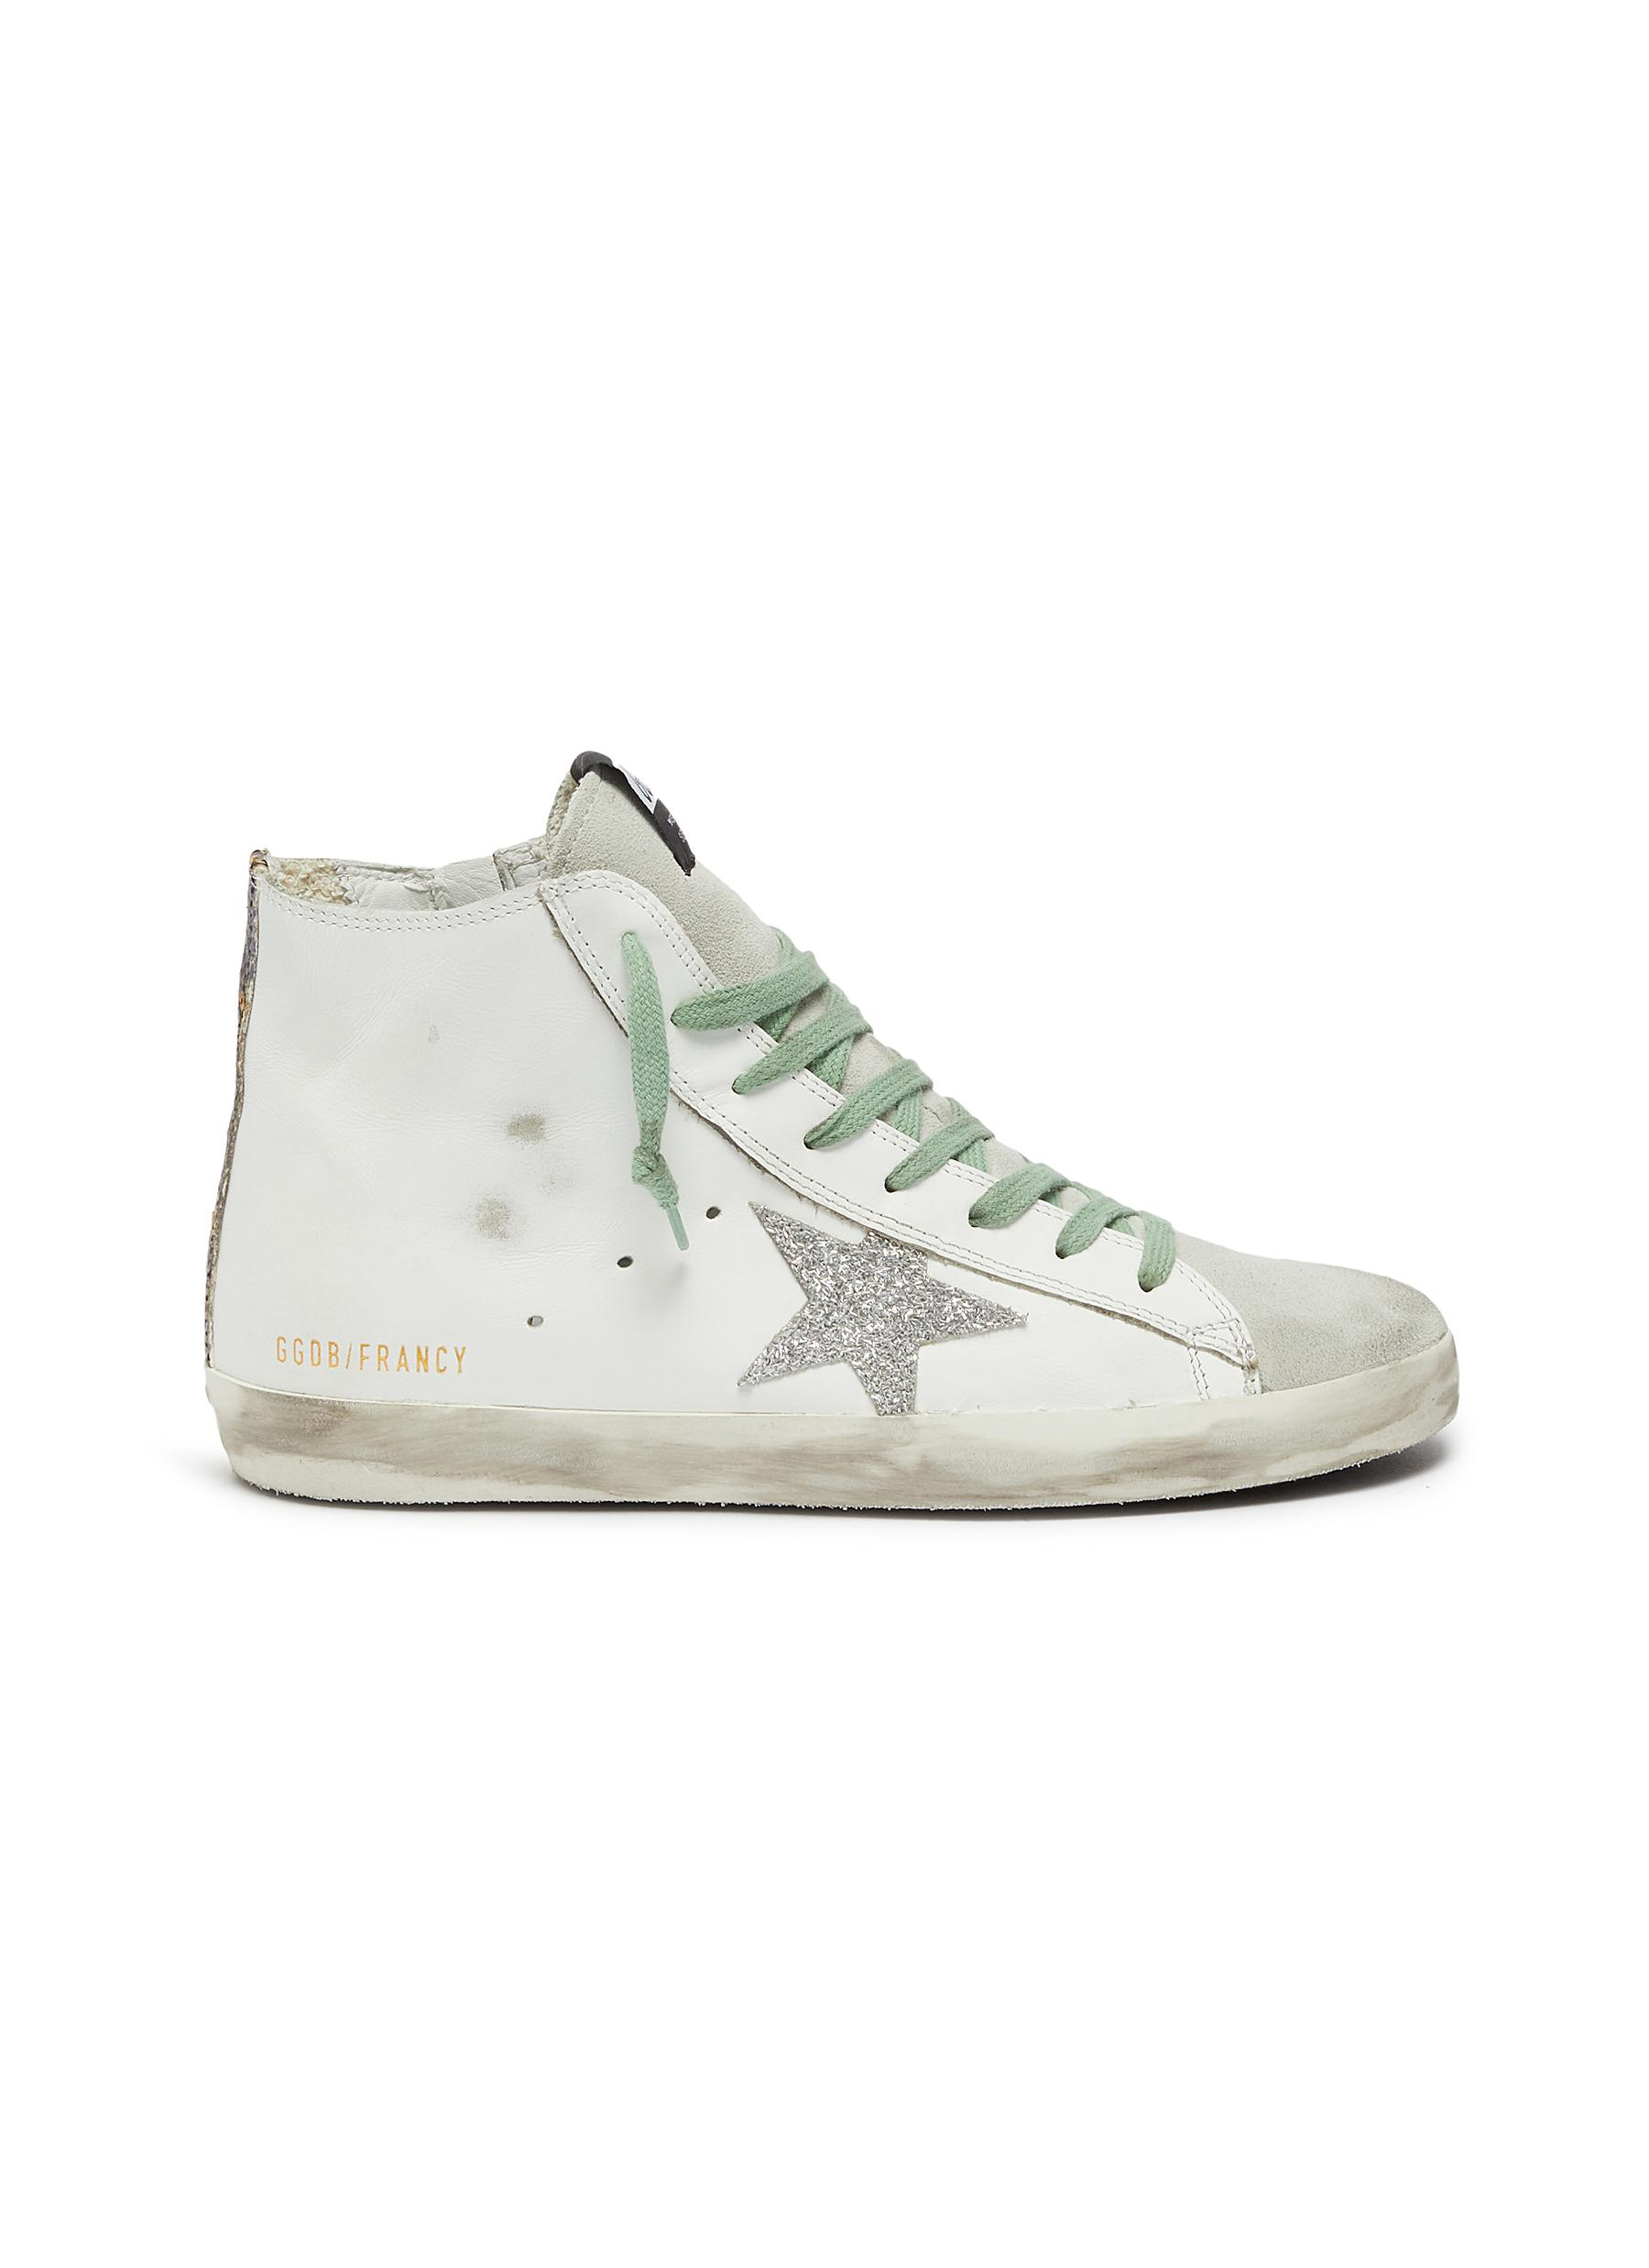 Francy leather high top sneakers by Golden Goose